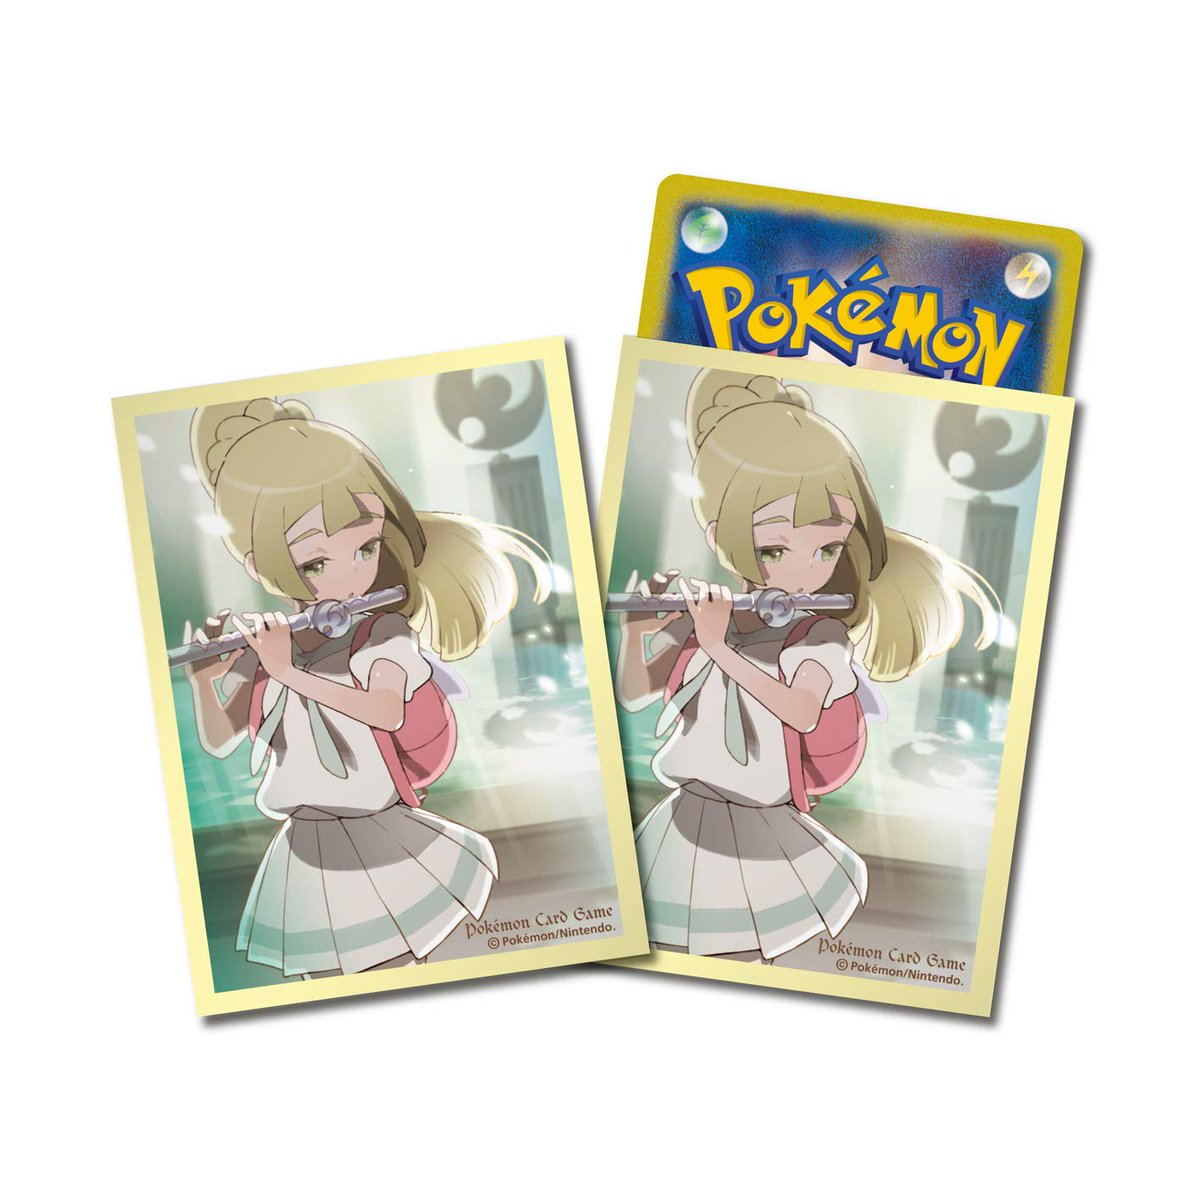 tweet-New Lillie sleeves releasing August  2nd. https://t.co/b4tlJ7Hmcg